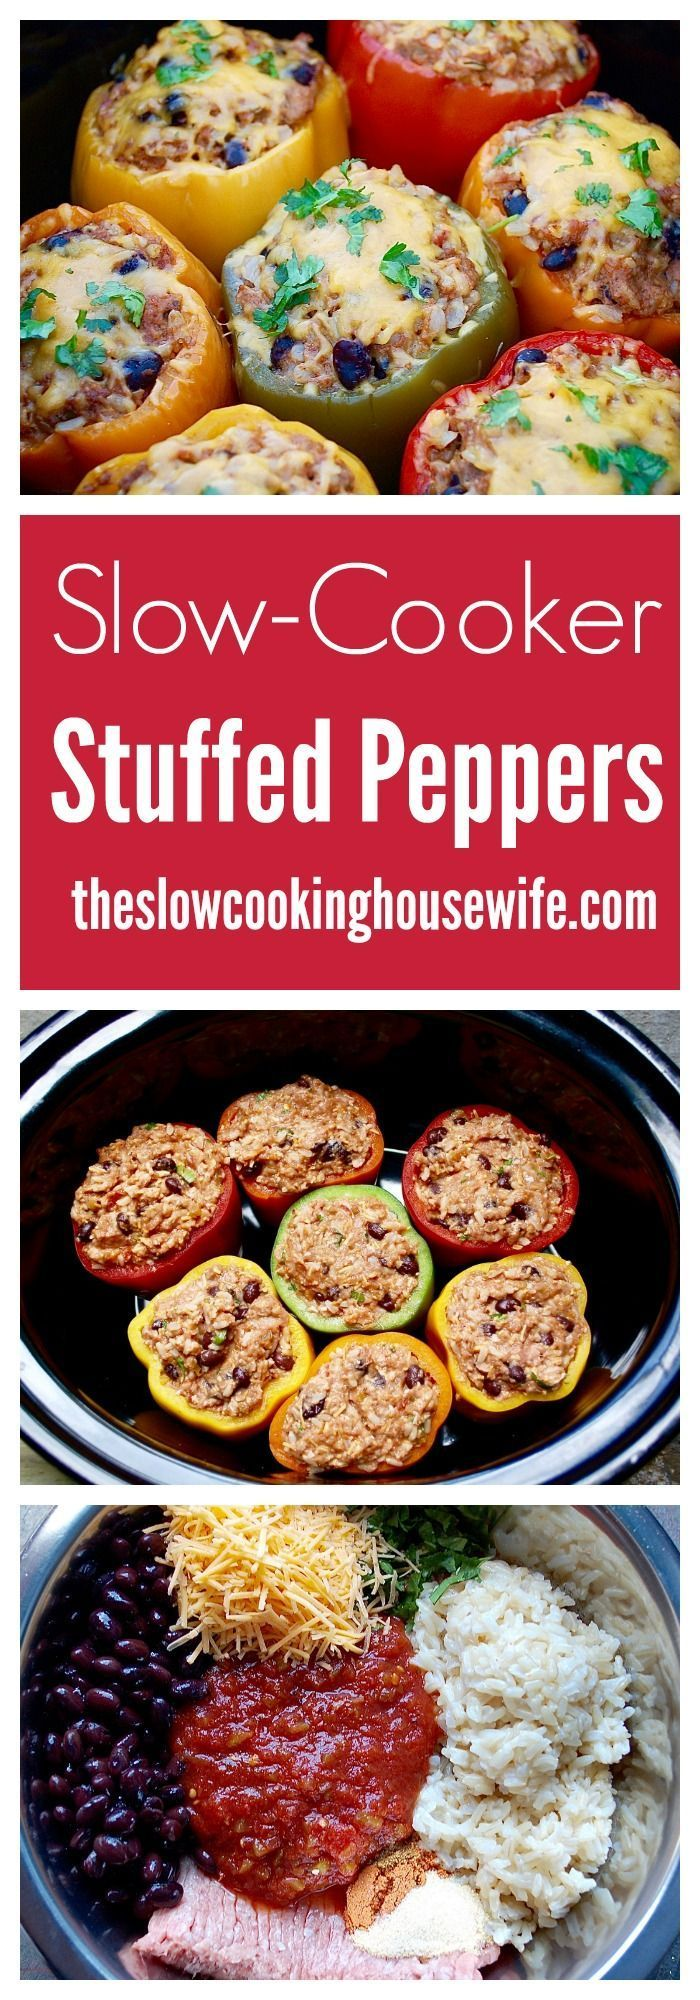 Crock Pot Stuffed Peppers! Easy, delicious, healthy, and packed with protein! So easy! http://www.theslowcookinghousewife.com/slow-cooker-mexican-stuffed-peppers/